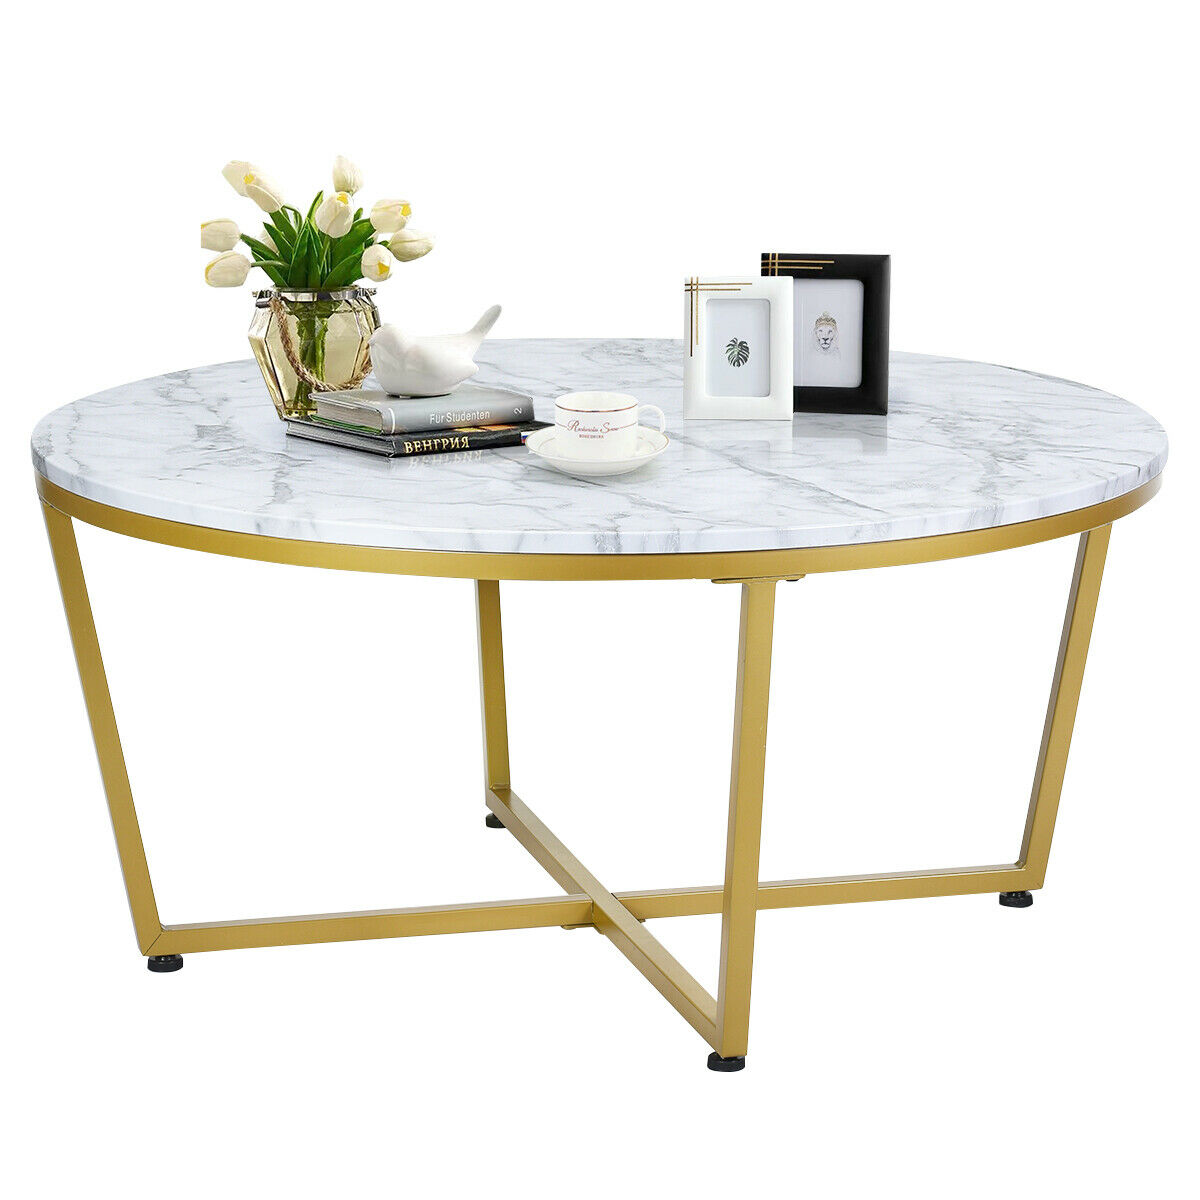 Gymax Modern Round Coffee Table Faux Marble Top W Gold